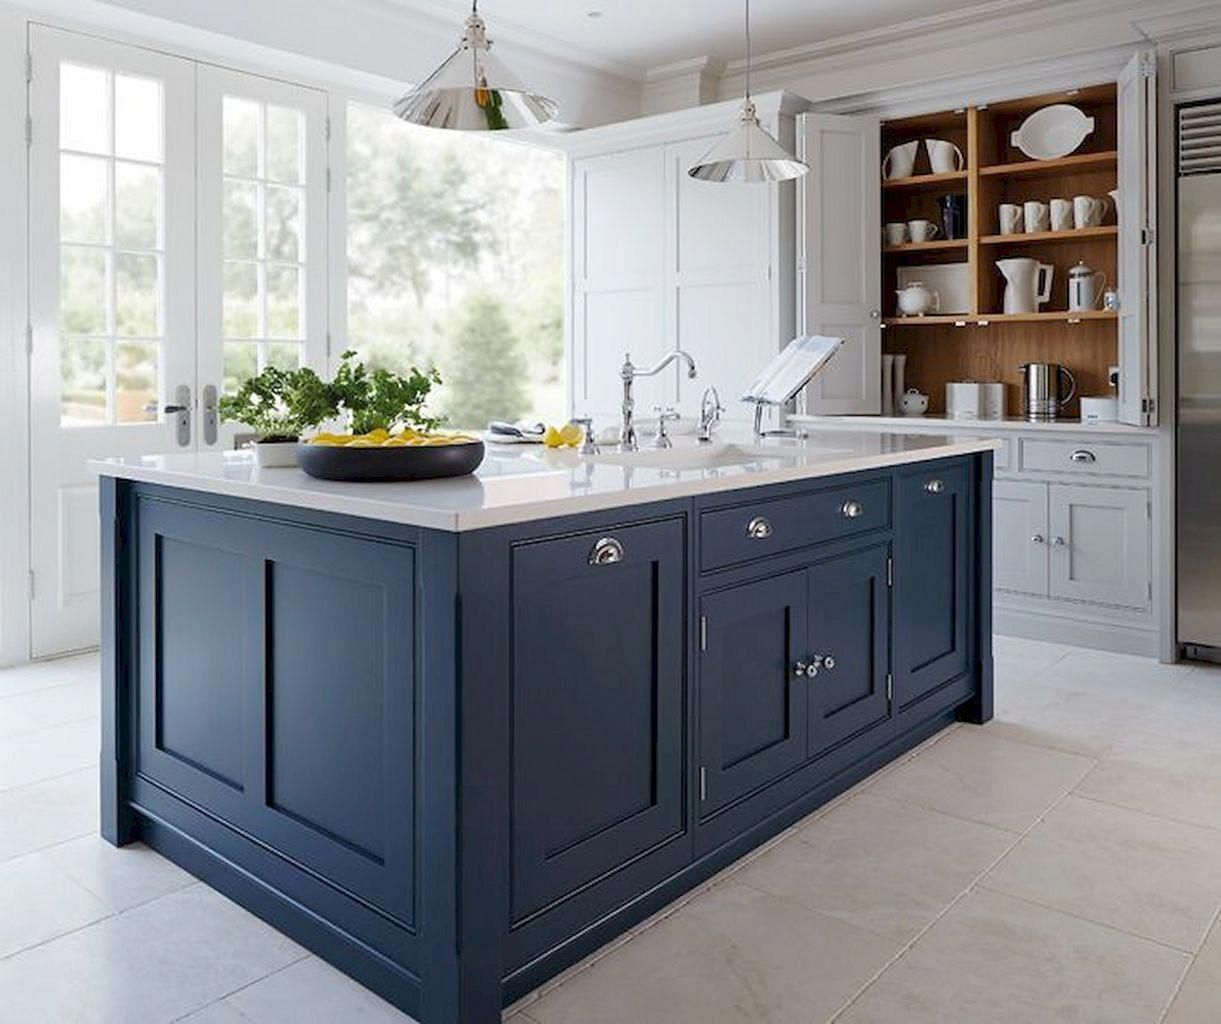 Beautiful Amish Made Kitchen Furniture Is Full Of Function For The Busiest Room In Kitchen Cabinets Color Combination Kitchen Cabinet Colors Blue Kitchen Paint